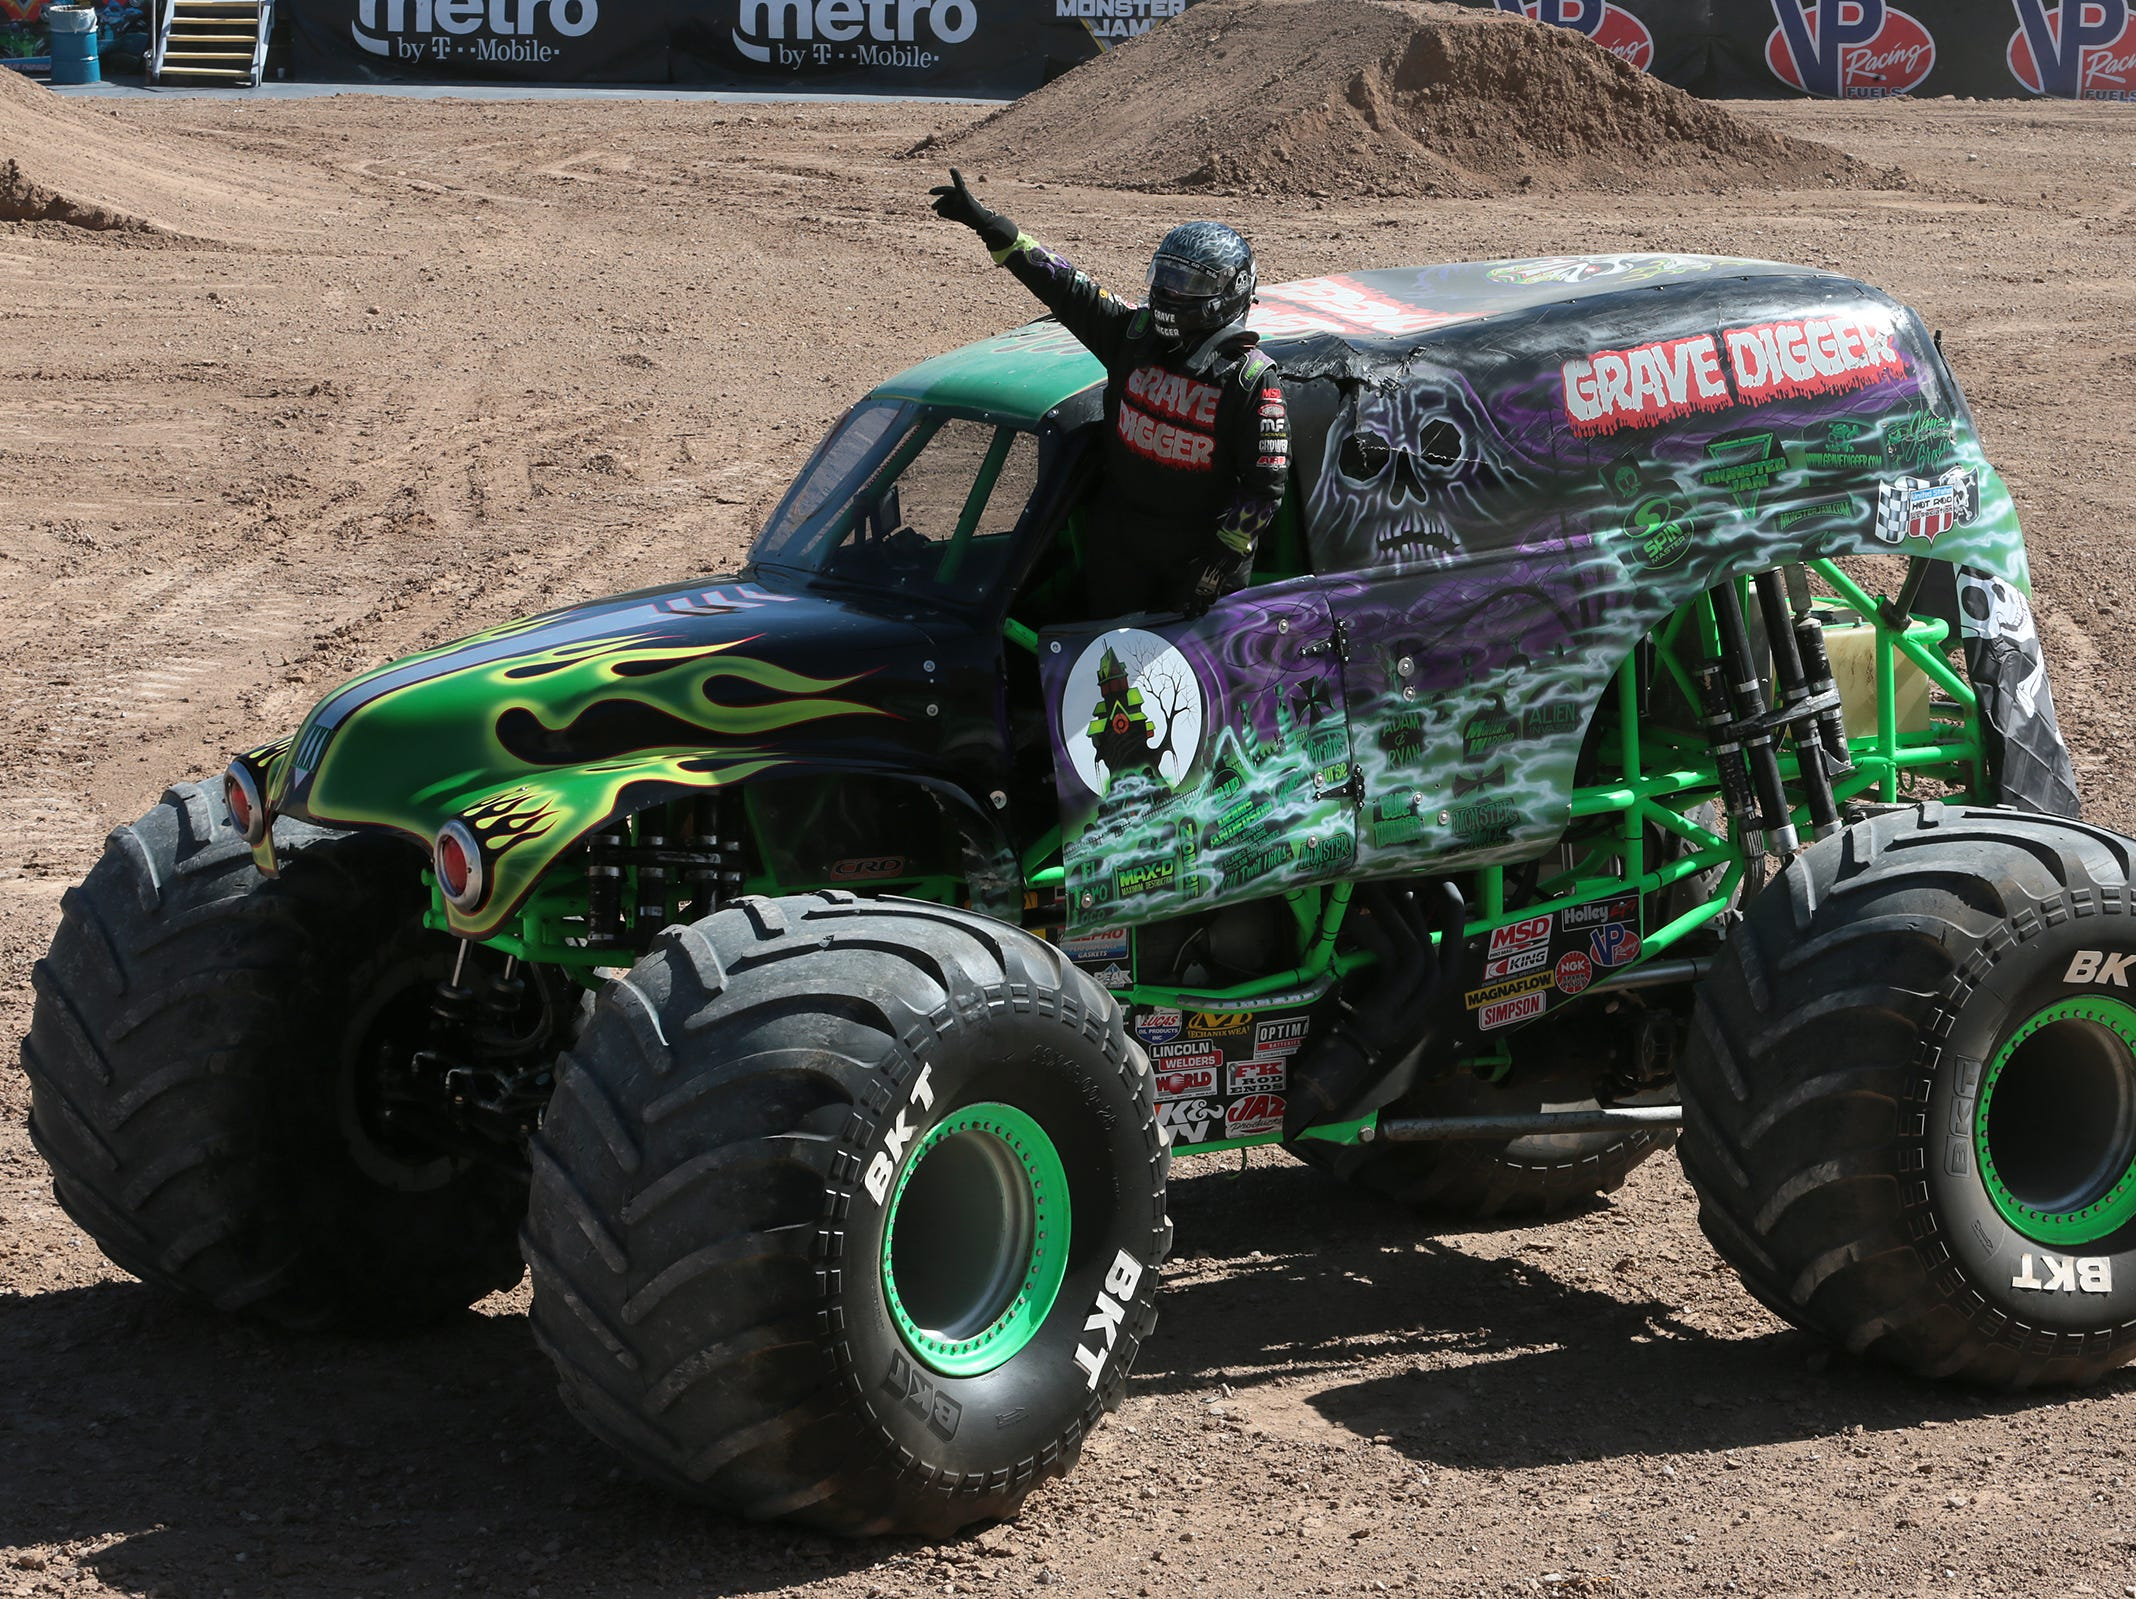 Adam Anderson emerges from his Grave Digger monster truck after a demonstration in the Sun Bowl. Monster Jam returns to the Sun Bowl Saturday and Sunday.